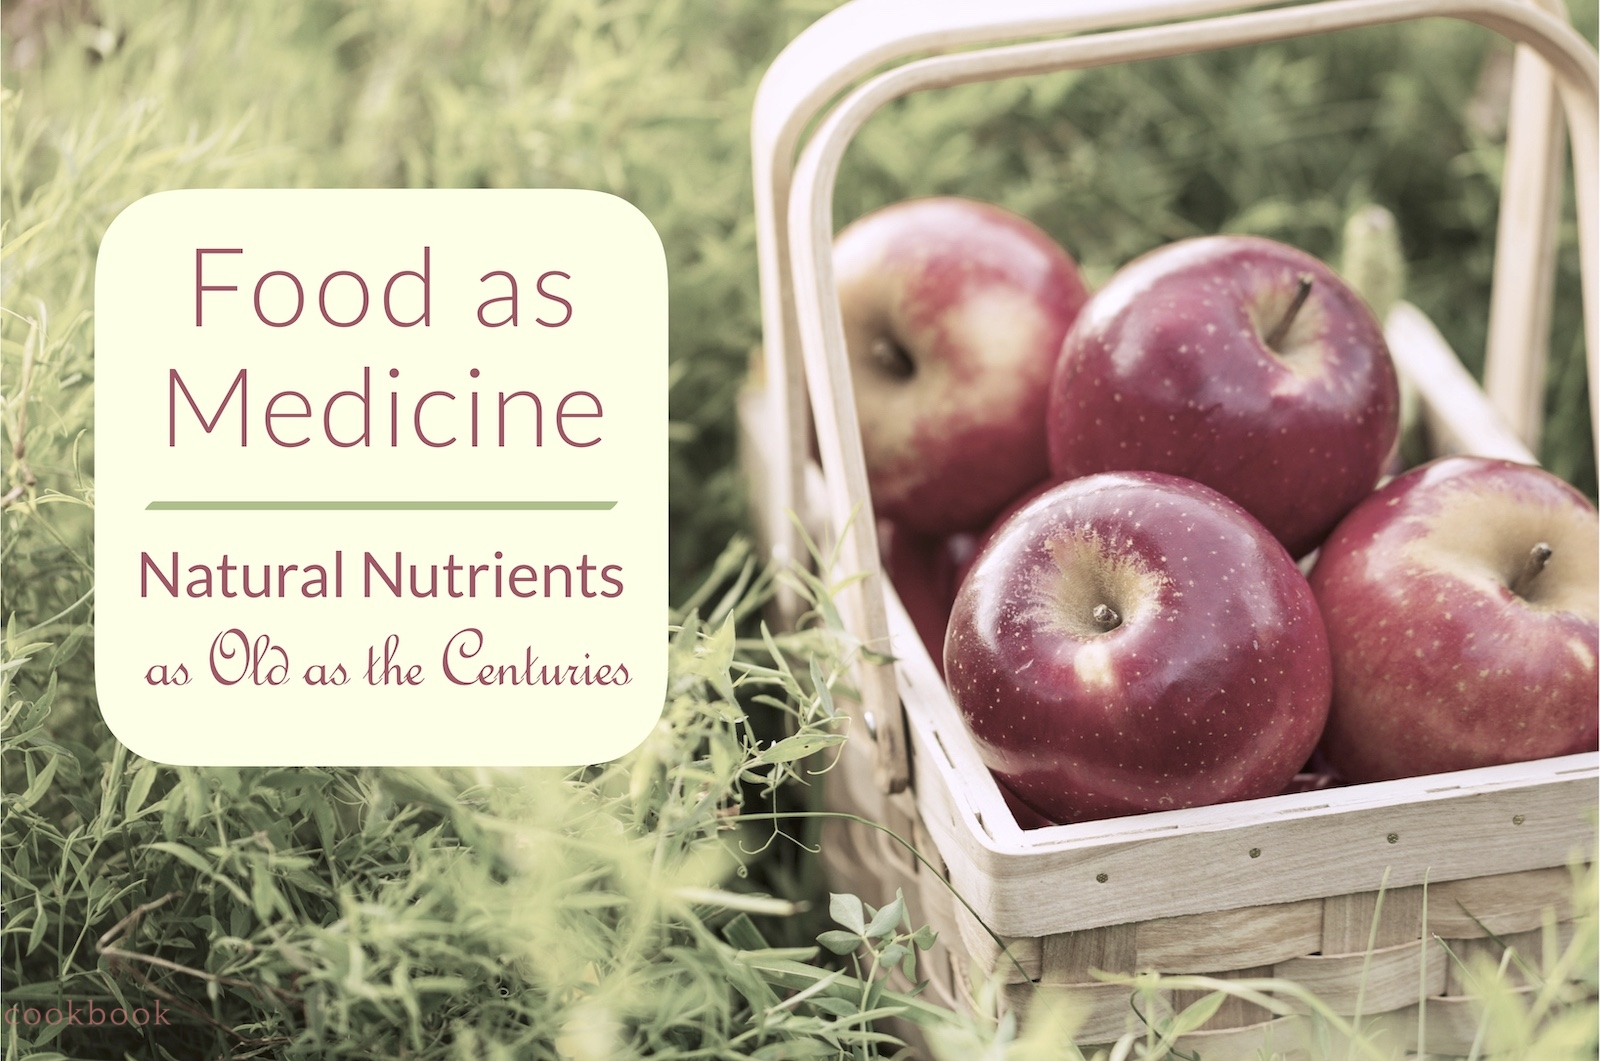 Basket of apples in field with text: Food As Medicine: Natural Nutrients as Old as the Centuries